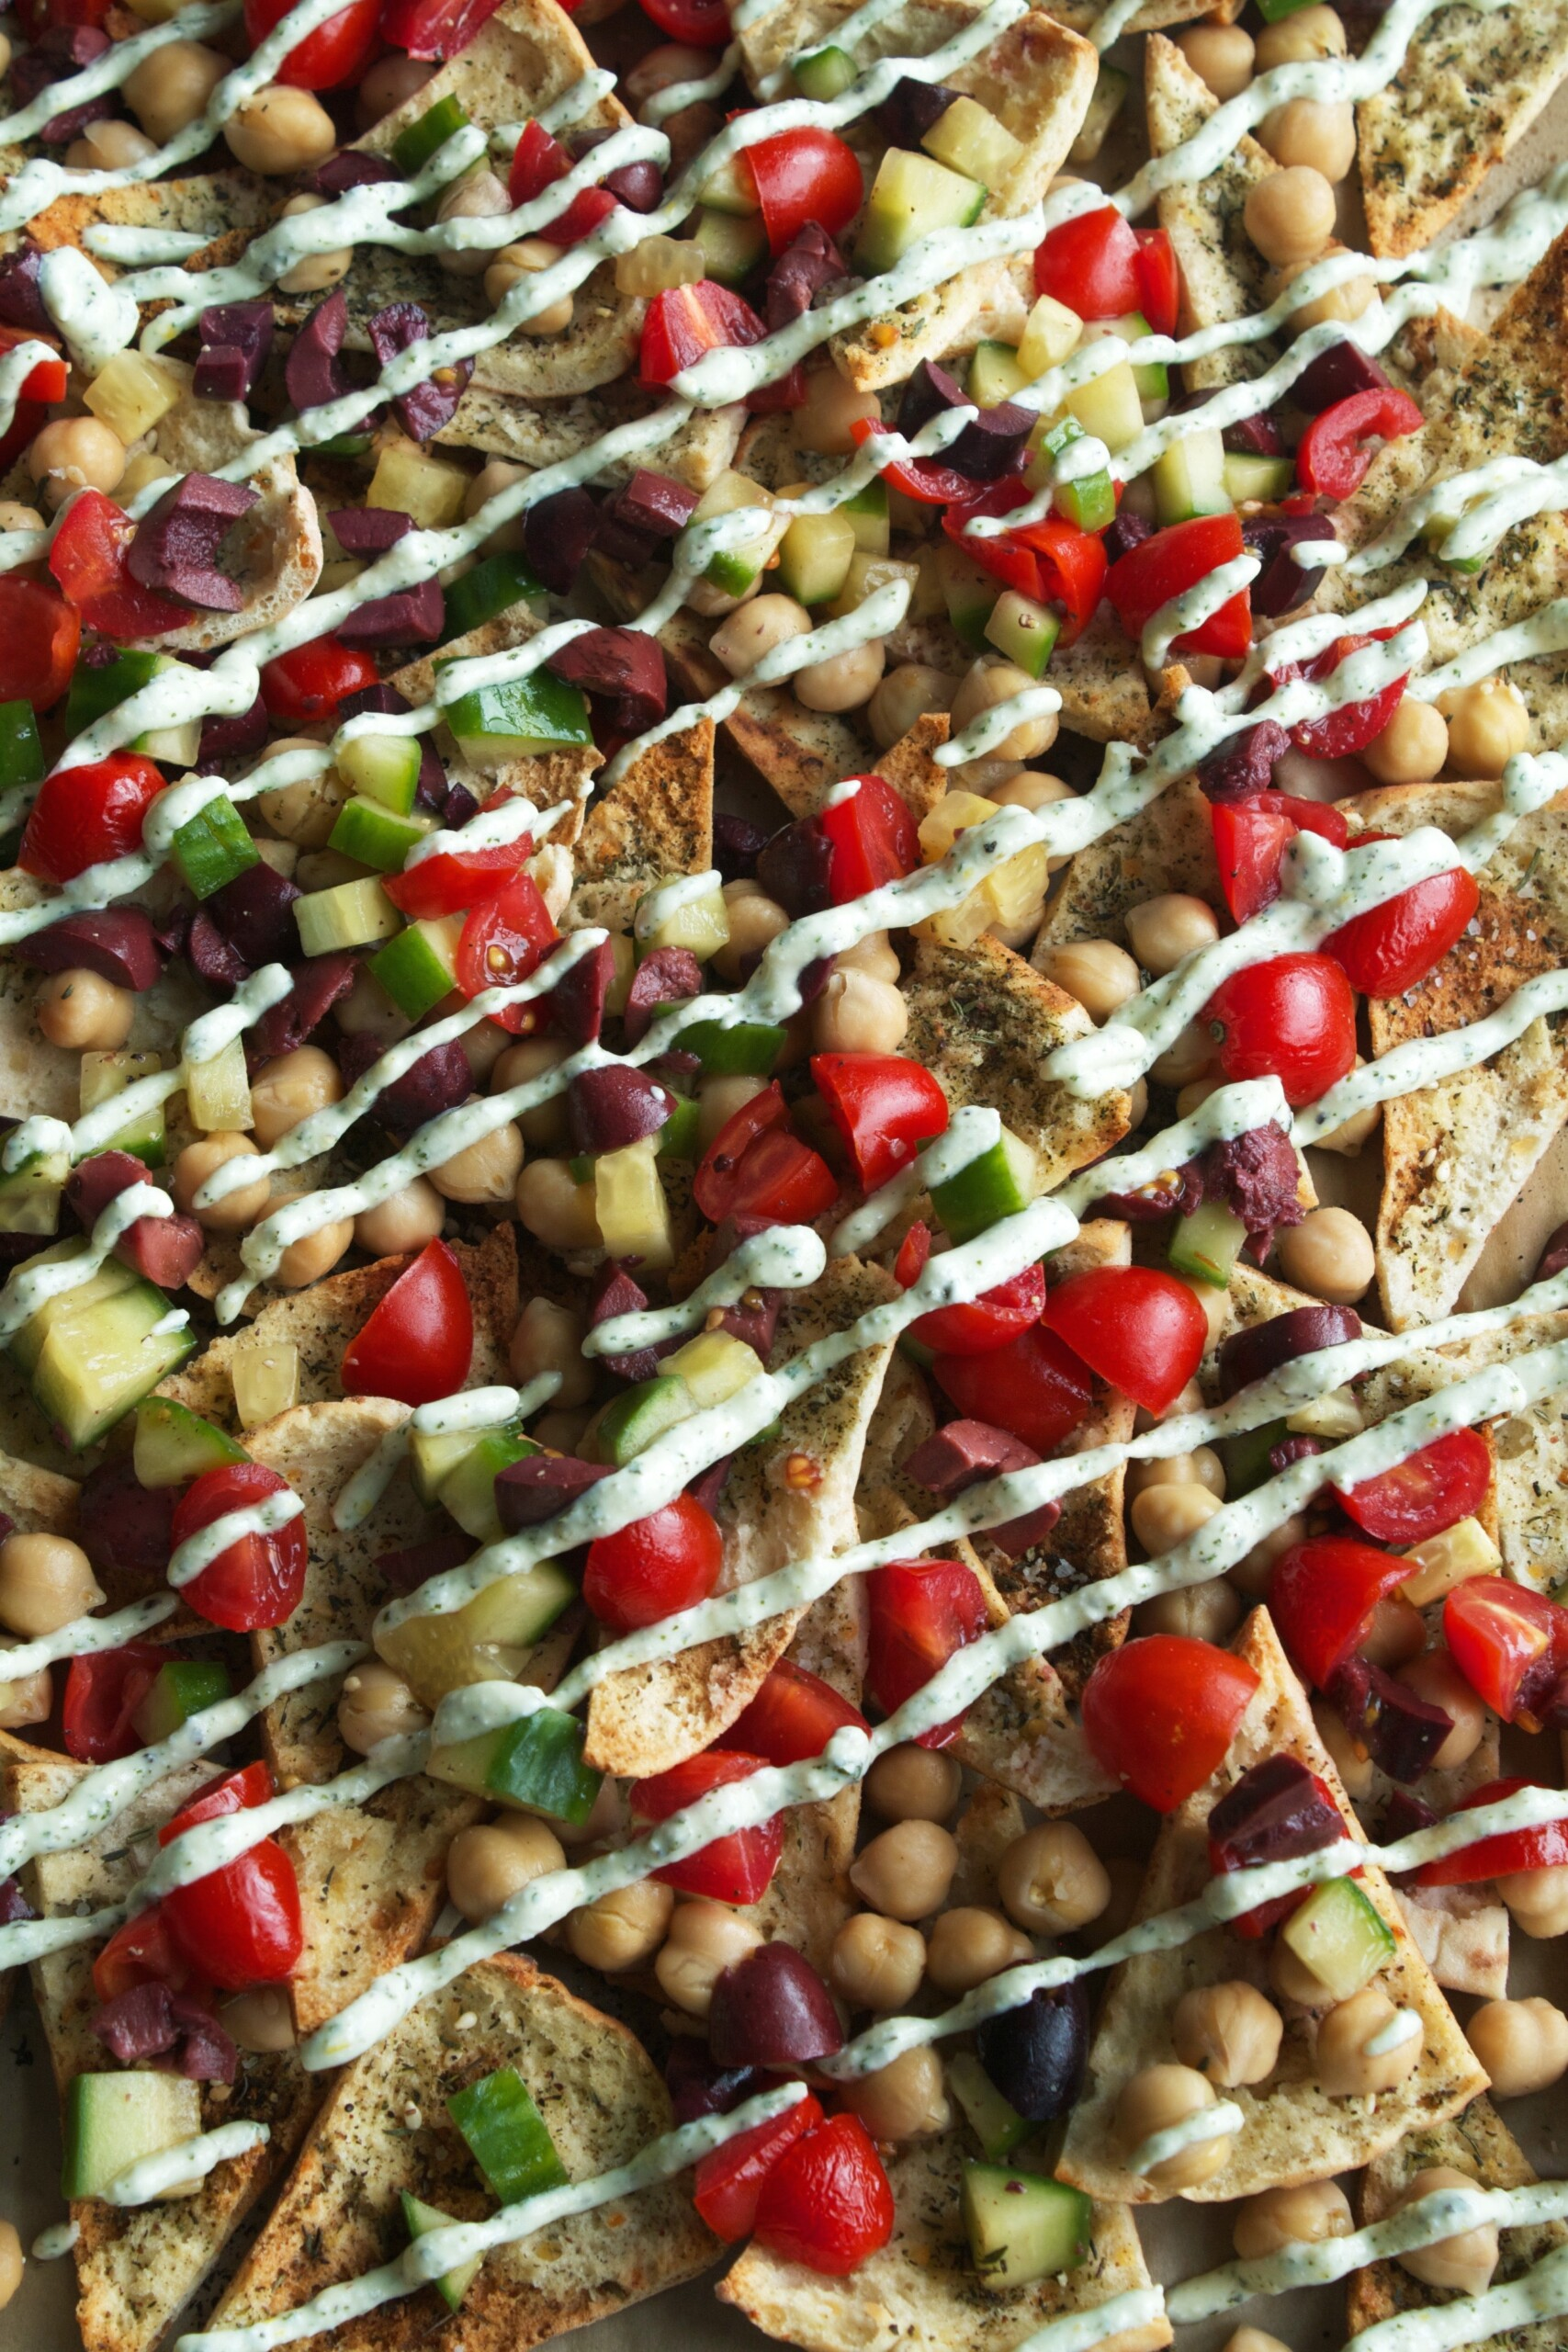 pita chips layered on a baking sheet topped with tomatoes, cucumbers, olives, chickpeas and a drizzle of yogurt-feta sauce